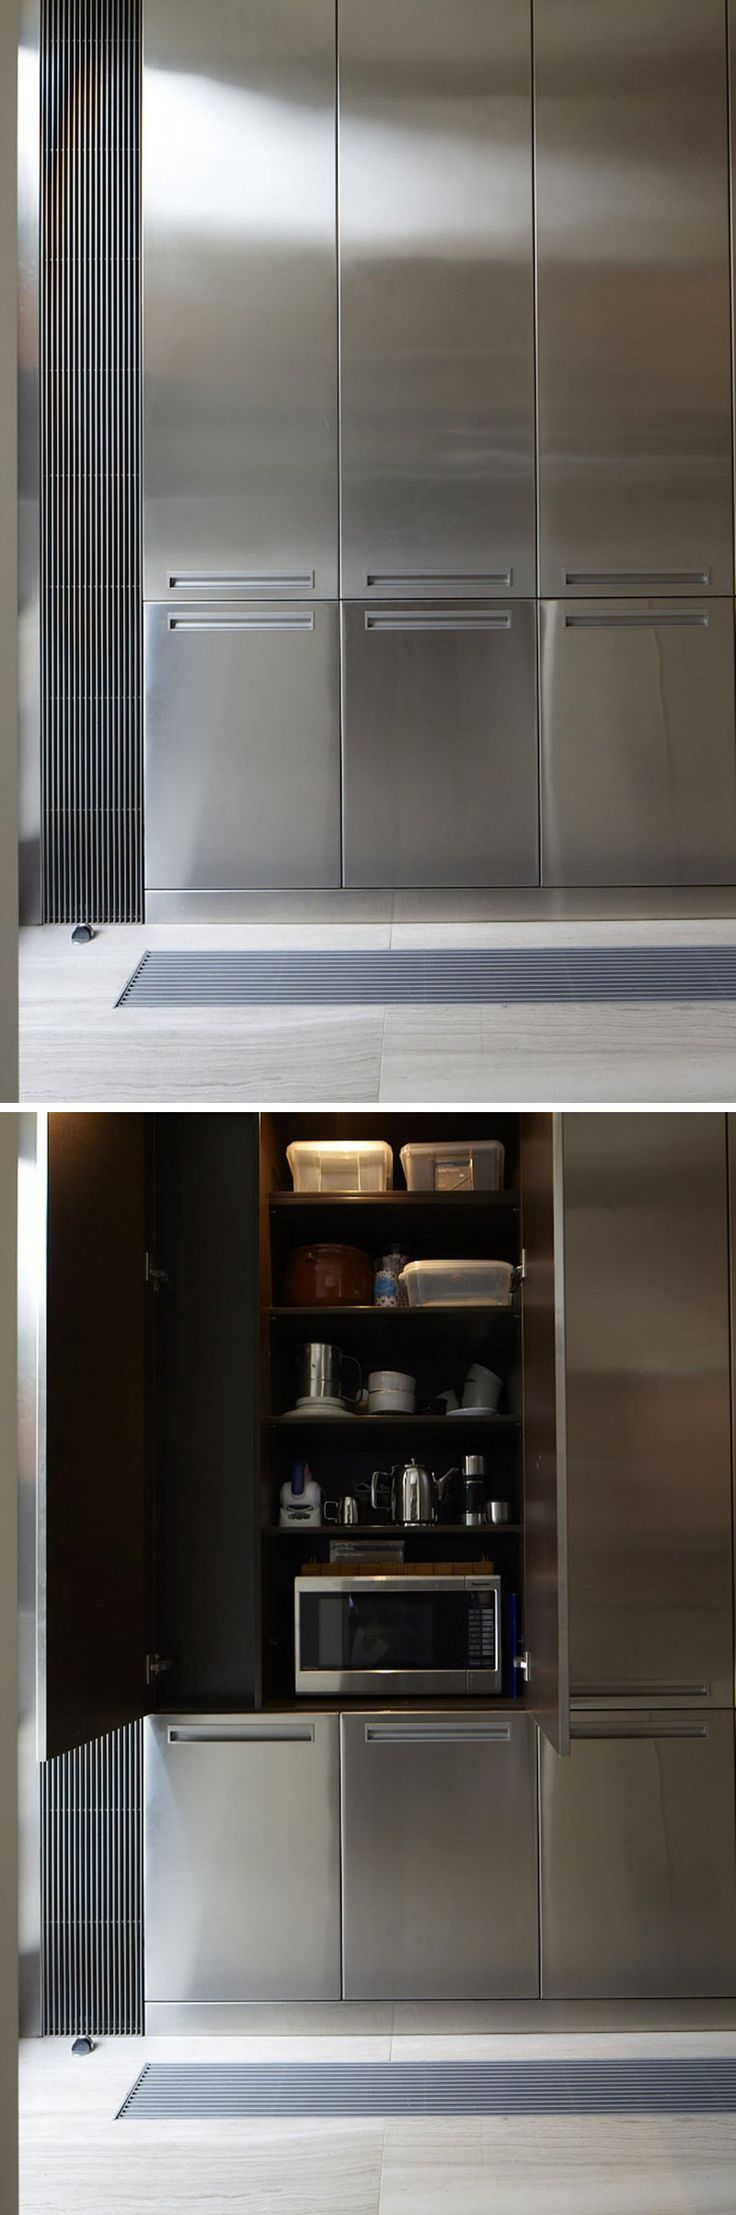 This modern and slightly industrial kitchen has a stainless steel oven and cooktop as well as a wall full large stainless steel cabinets that provide plenty of storage, and make a good hiding spot for appliance.